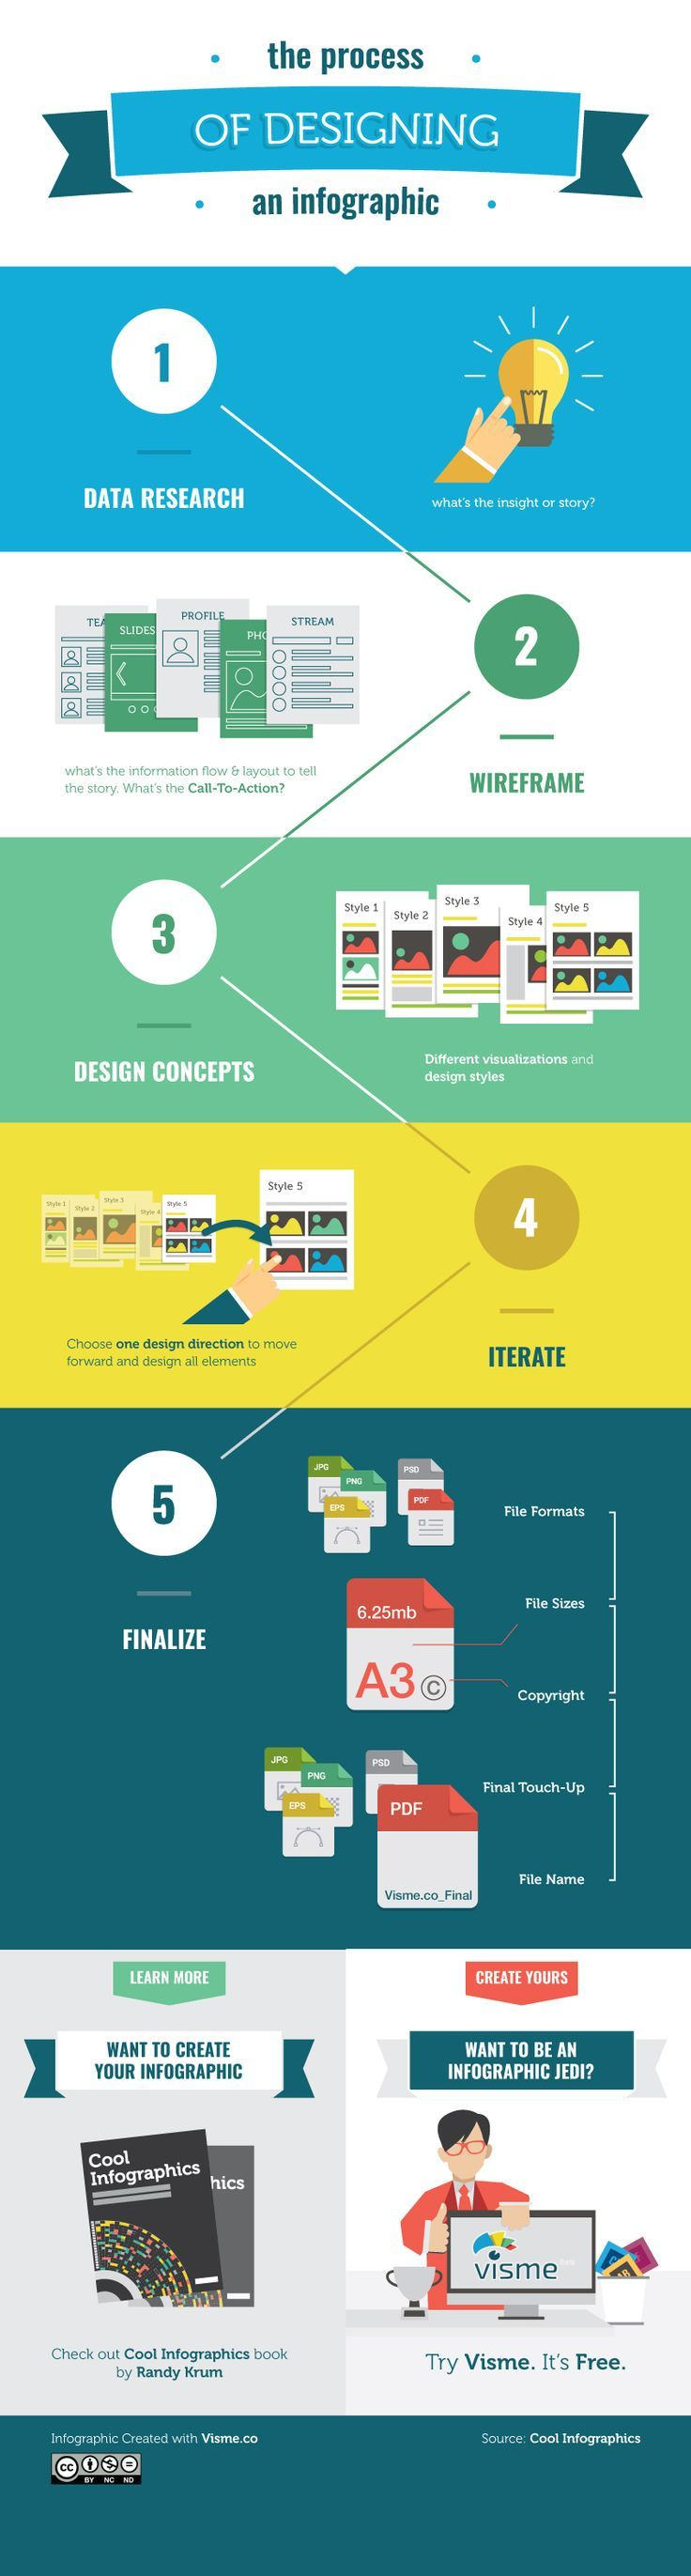 Pin By William Hulsey On Pc Pinterest Infographic Design Process Flow Diagram Website Creation Simplified In 5 Steps Infographics Chart Ui